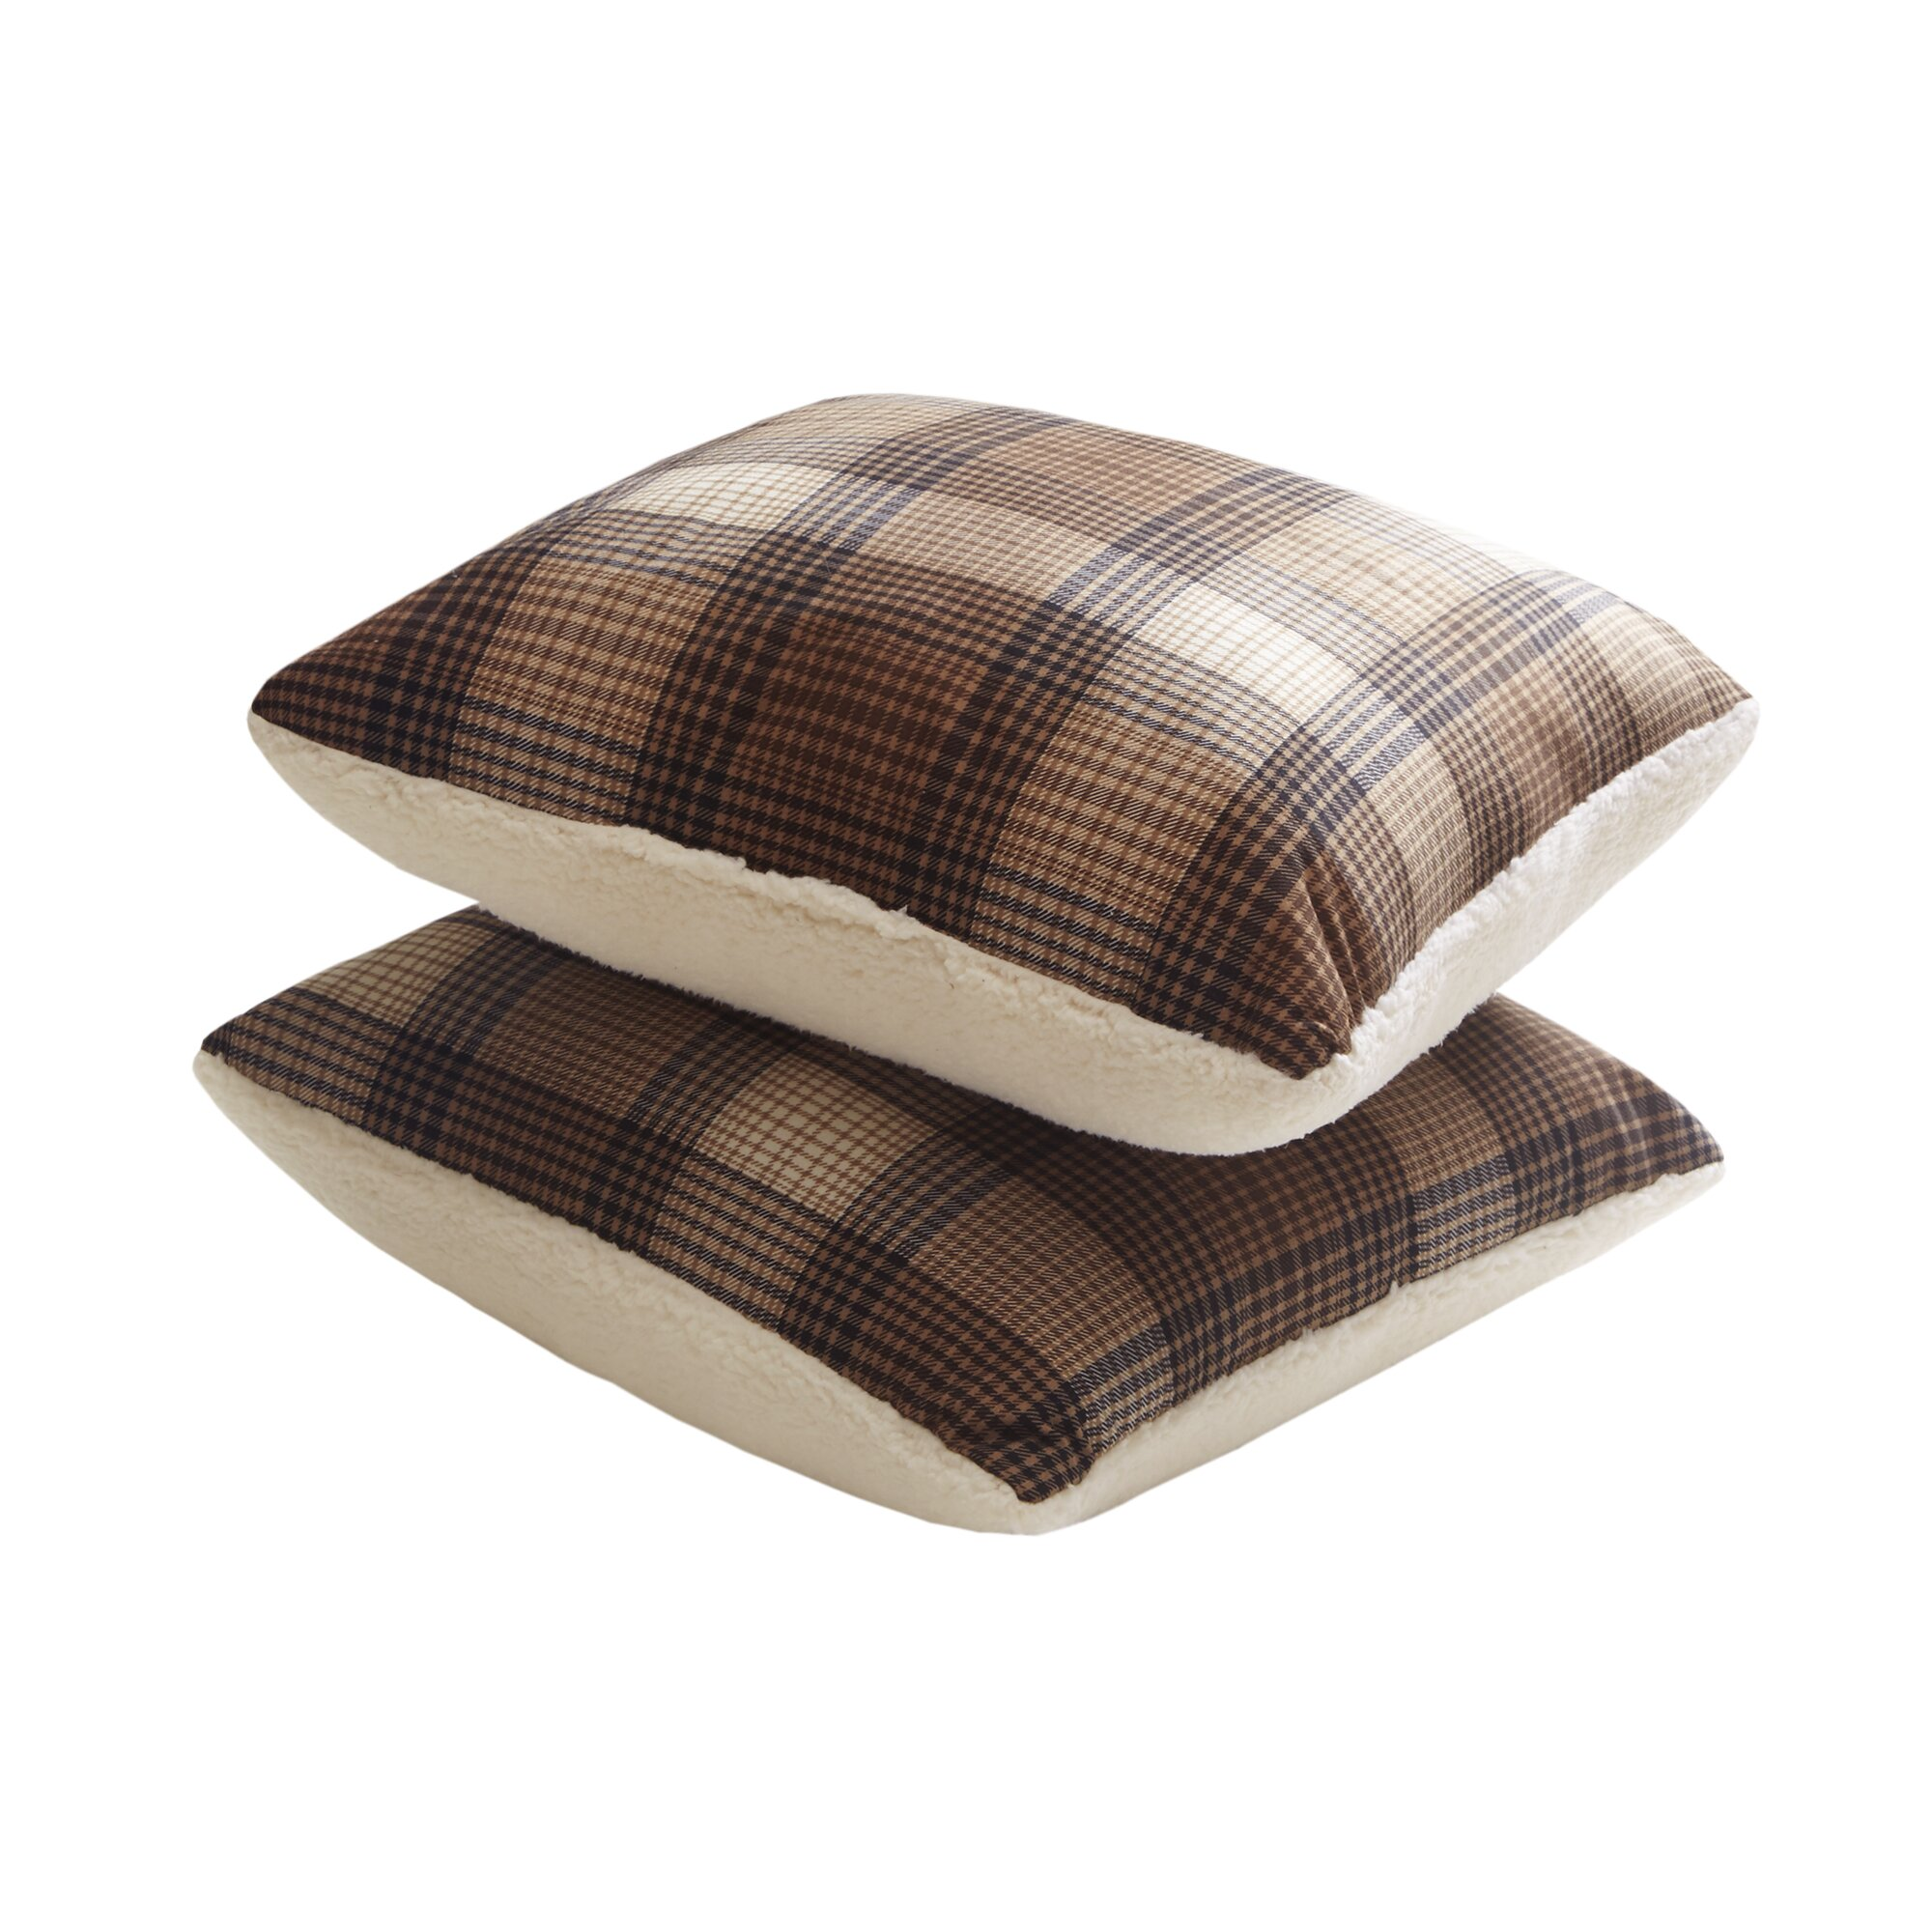 Woolrich Dog Decorative Pillow : Woolrich Lumberjack Throw Pillow & Reviews Wayfair